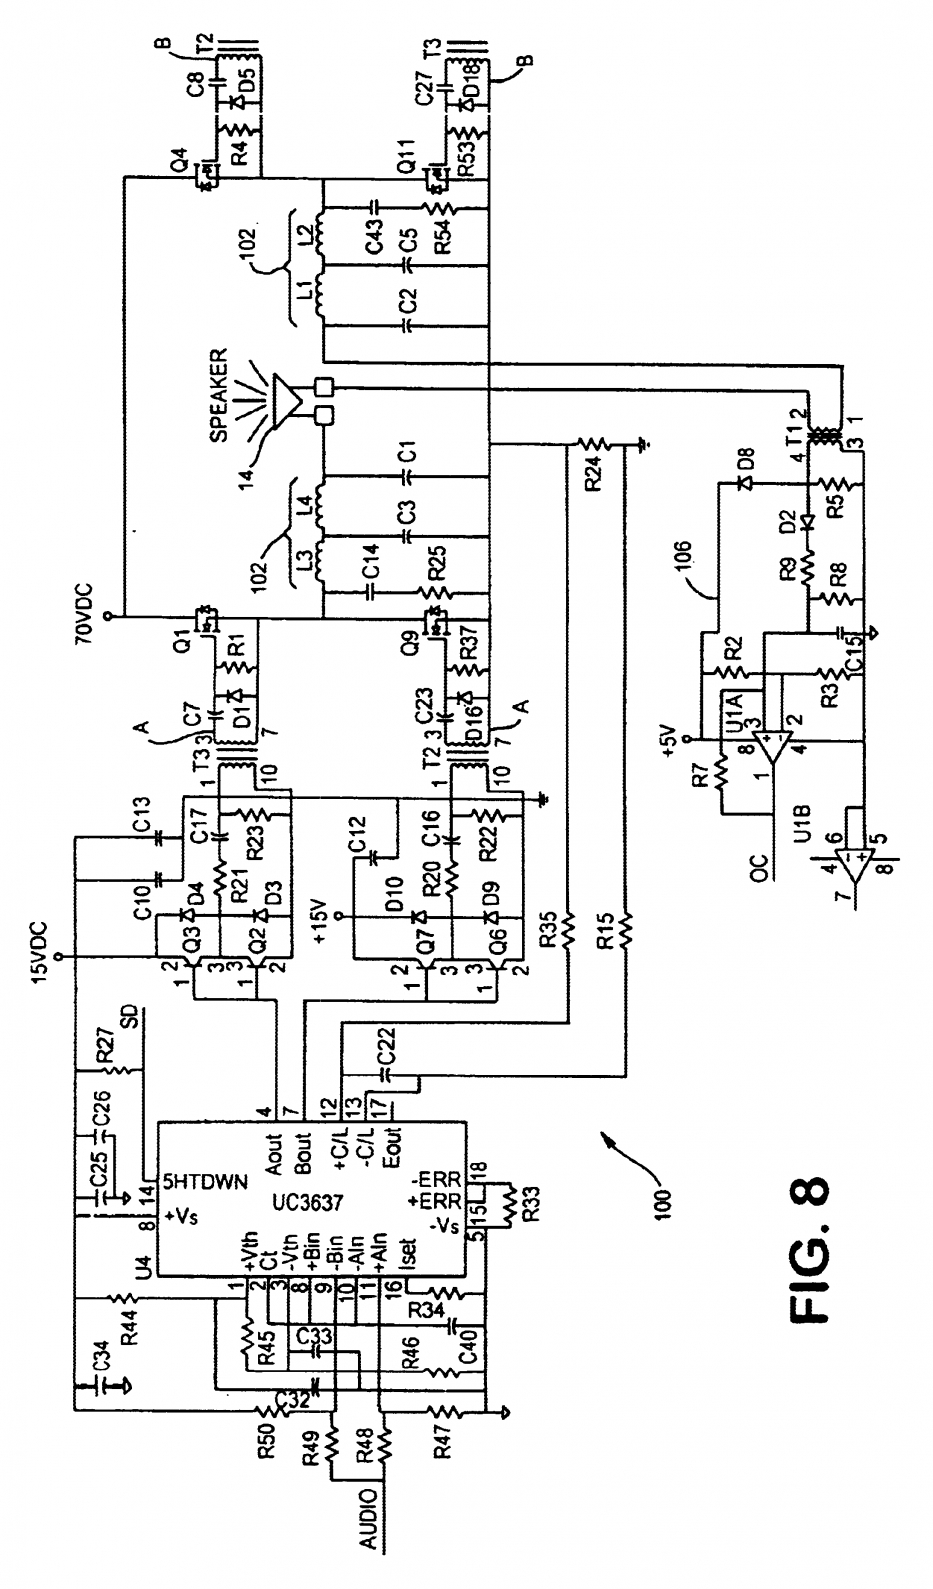 whelen ws 295 siren wiring diagram collection